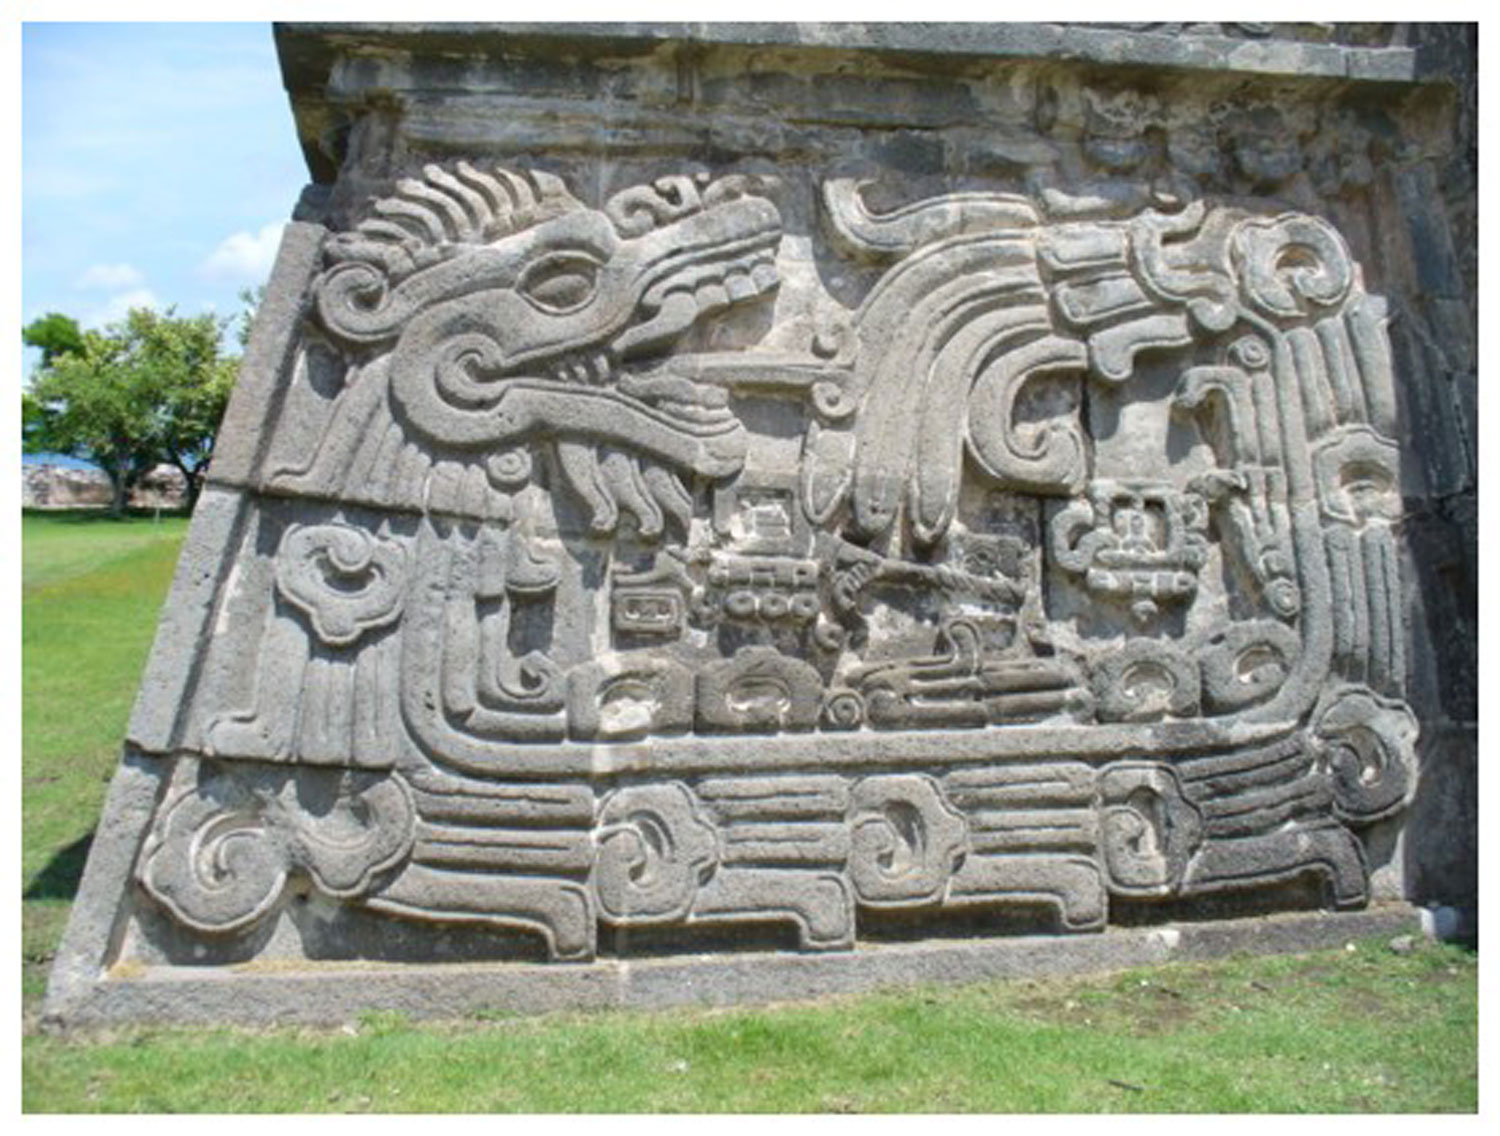 The serpent eating its own tail, possibly representing the recreation of life through death? The temple of the Feathered Serpent, Xochicalco. Credit: Pinterest.